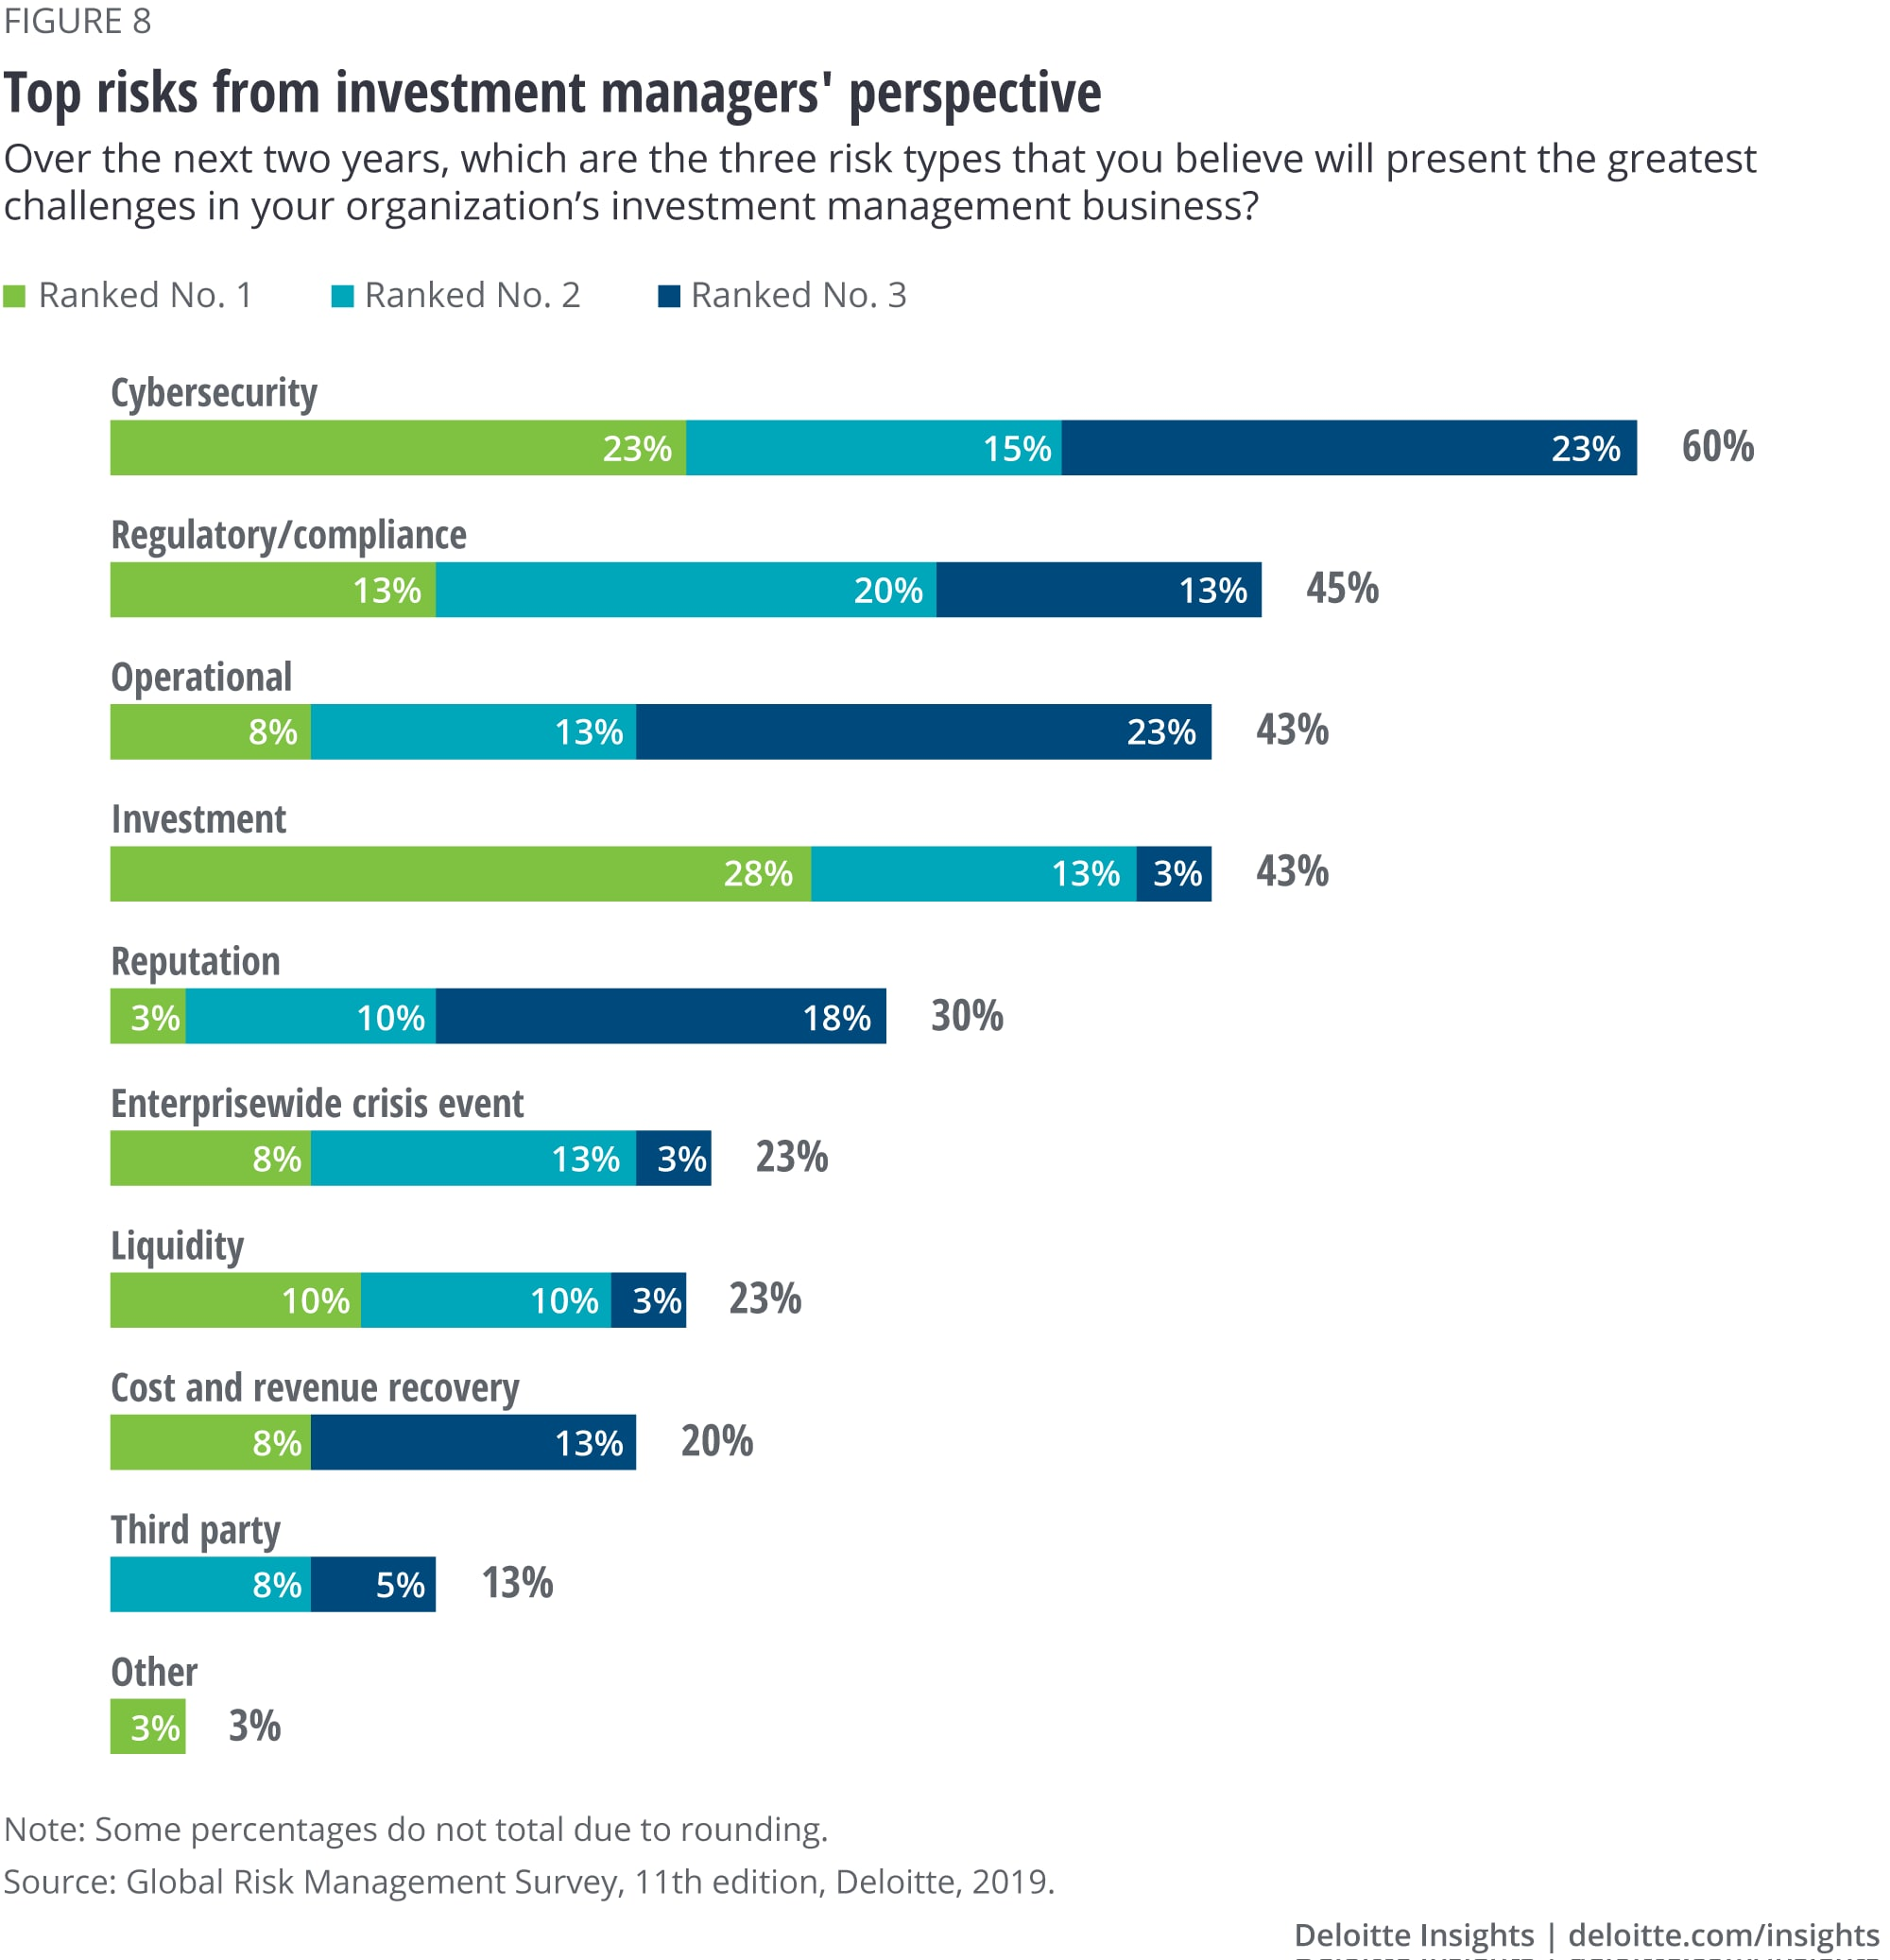 Top risks from an investment managers' perspective